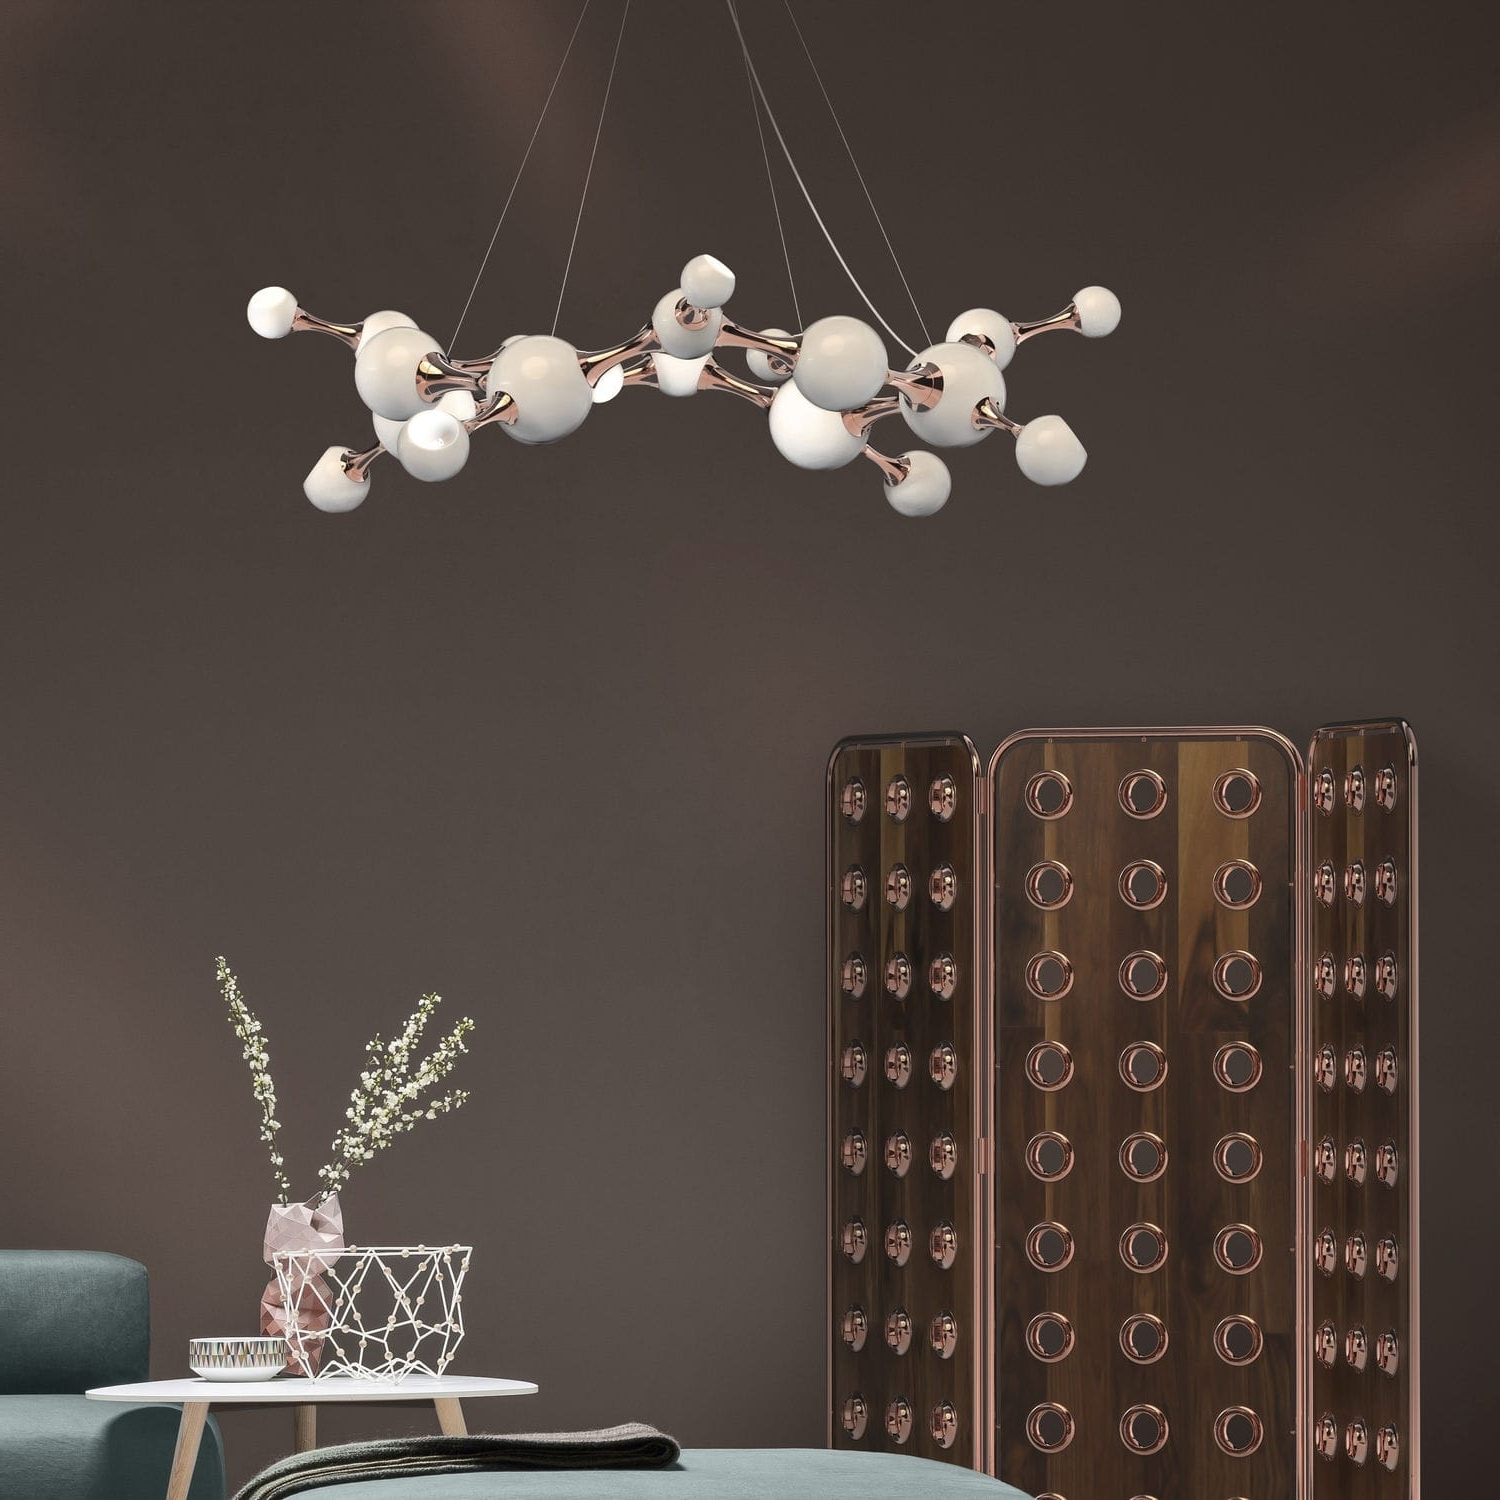 Atom Chandeliers Pertaining To Favorite Original Design Chandelier / Brass / Steel / Commercial – Atomic (View 9 of 15)